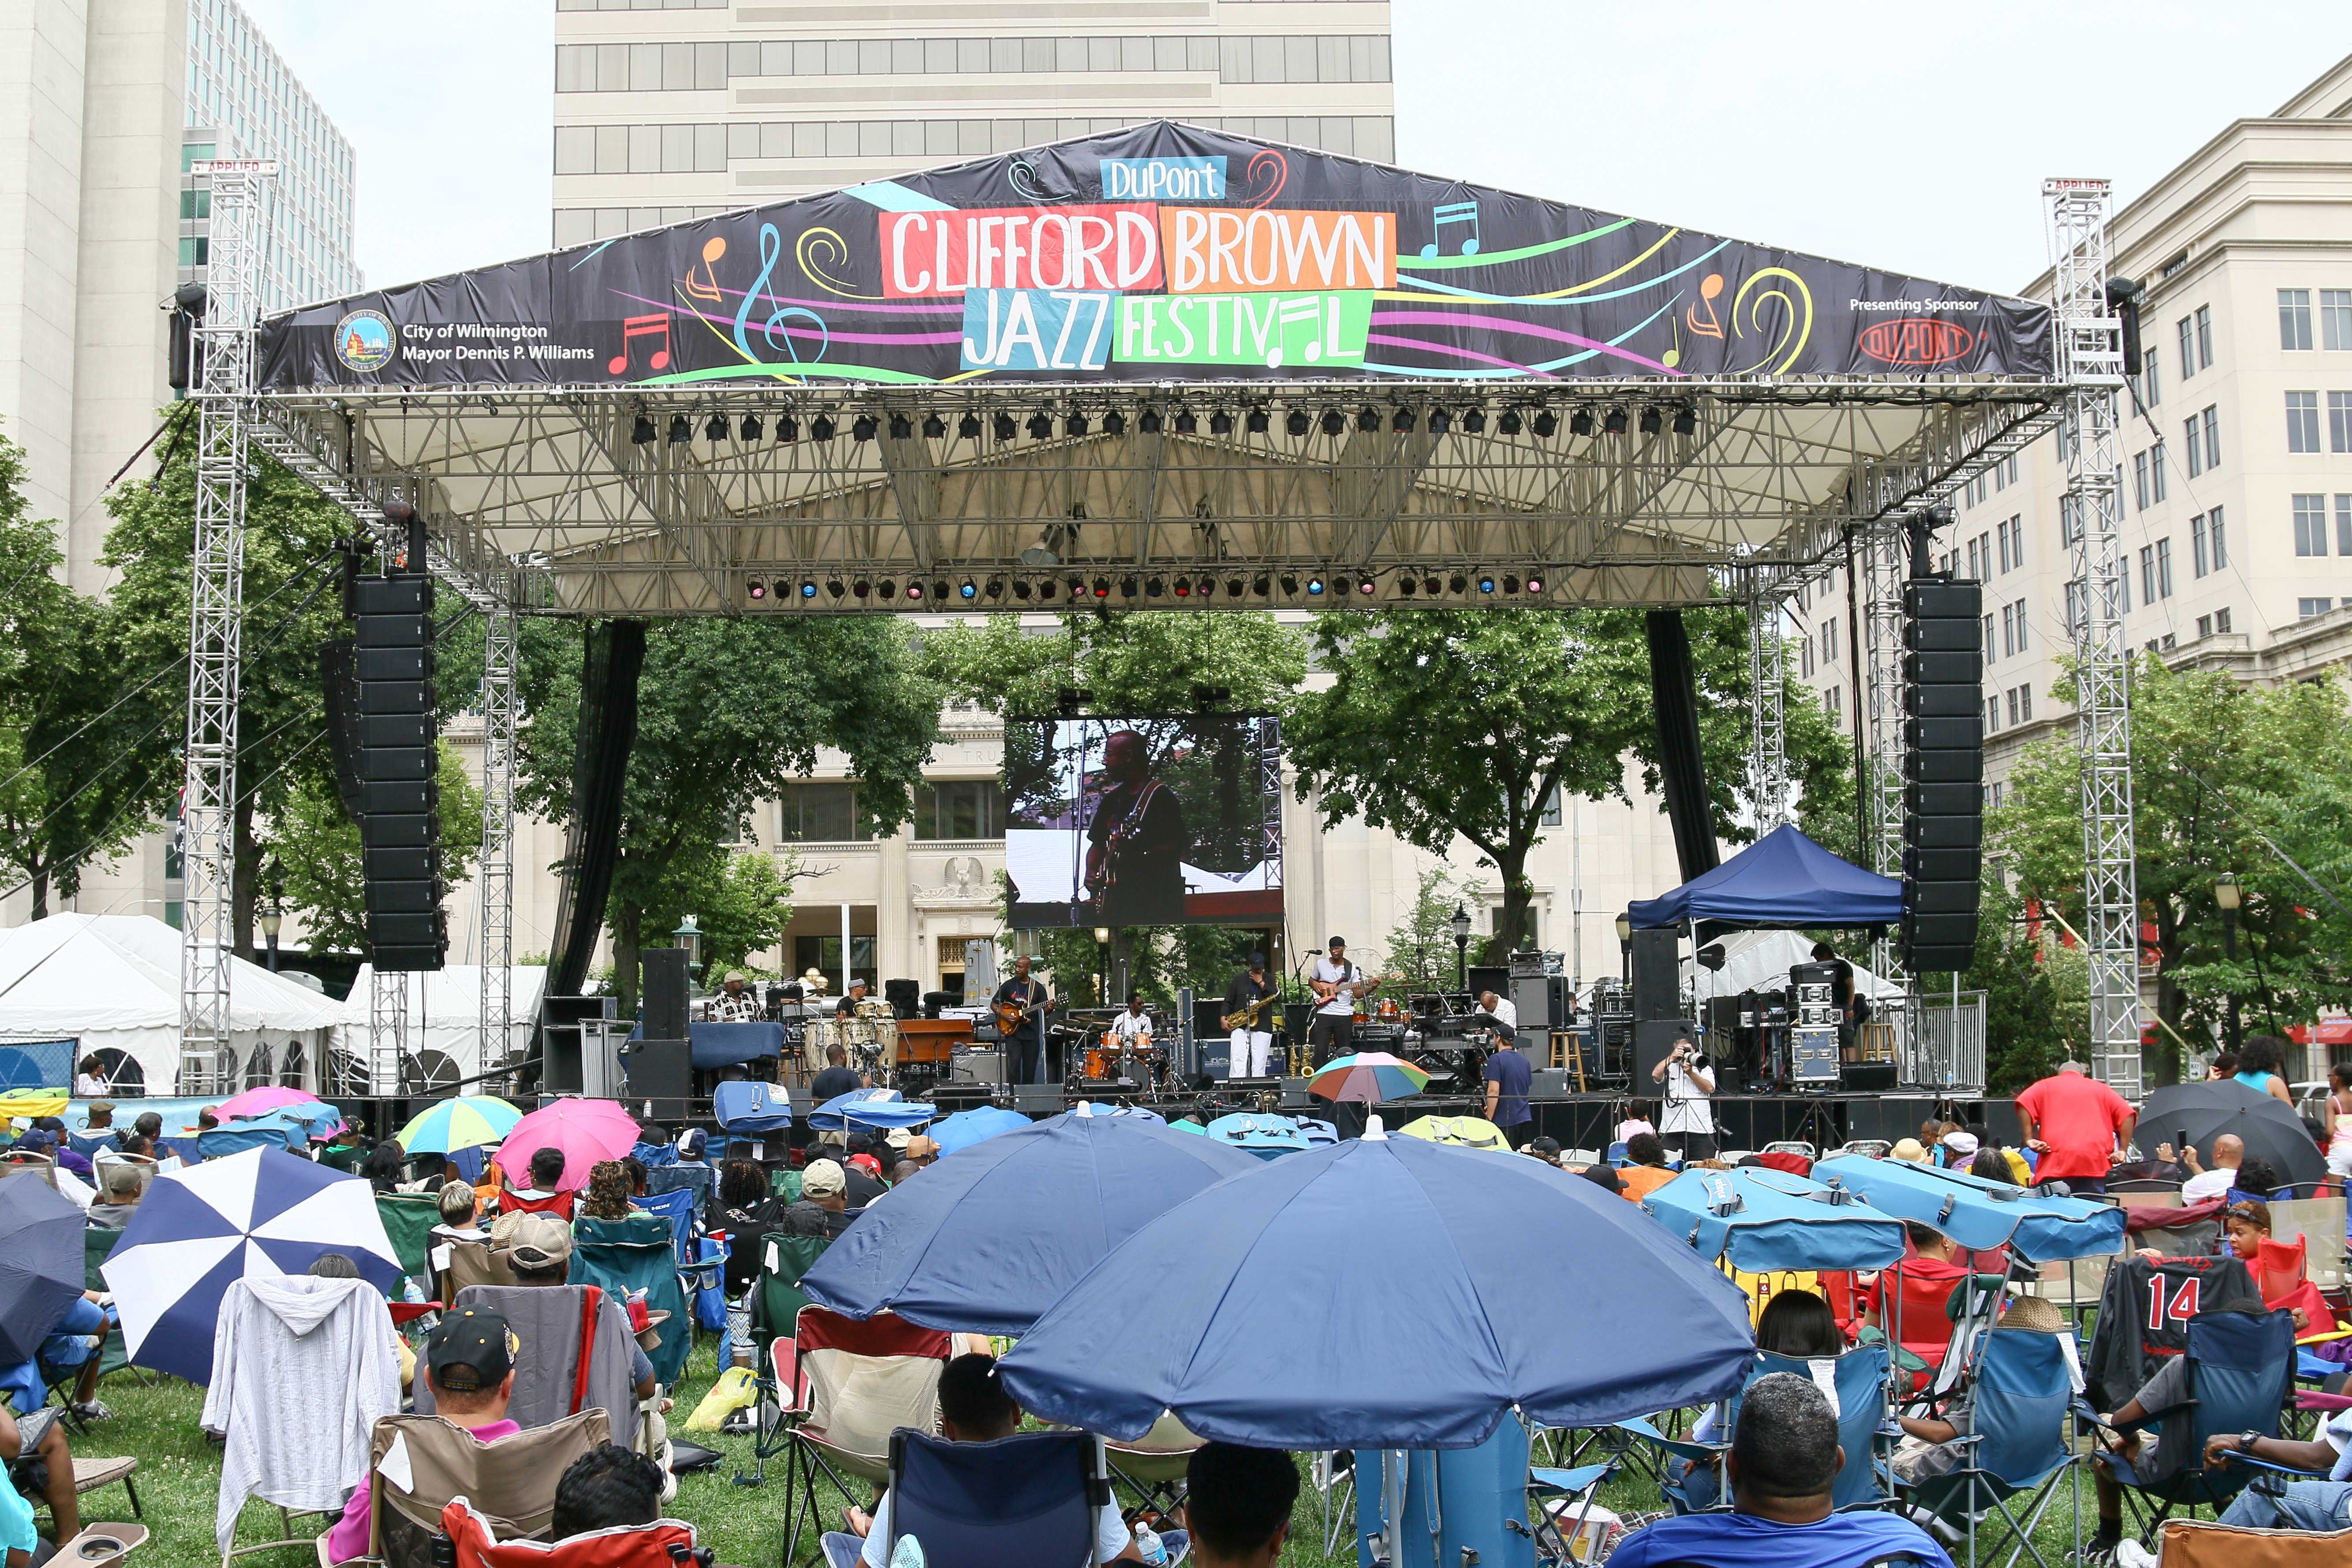 Aniya Jazz performs in front of a large crowd on the last day of the 26th annual duPont Clifford Brown Jazz Festival